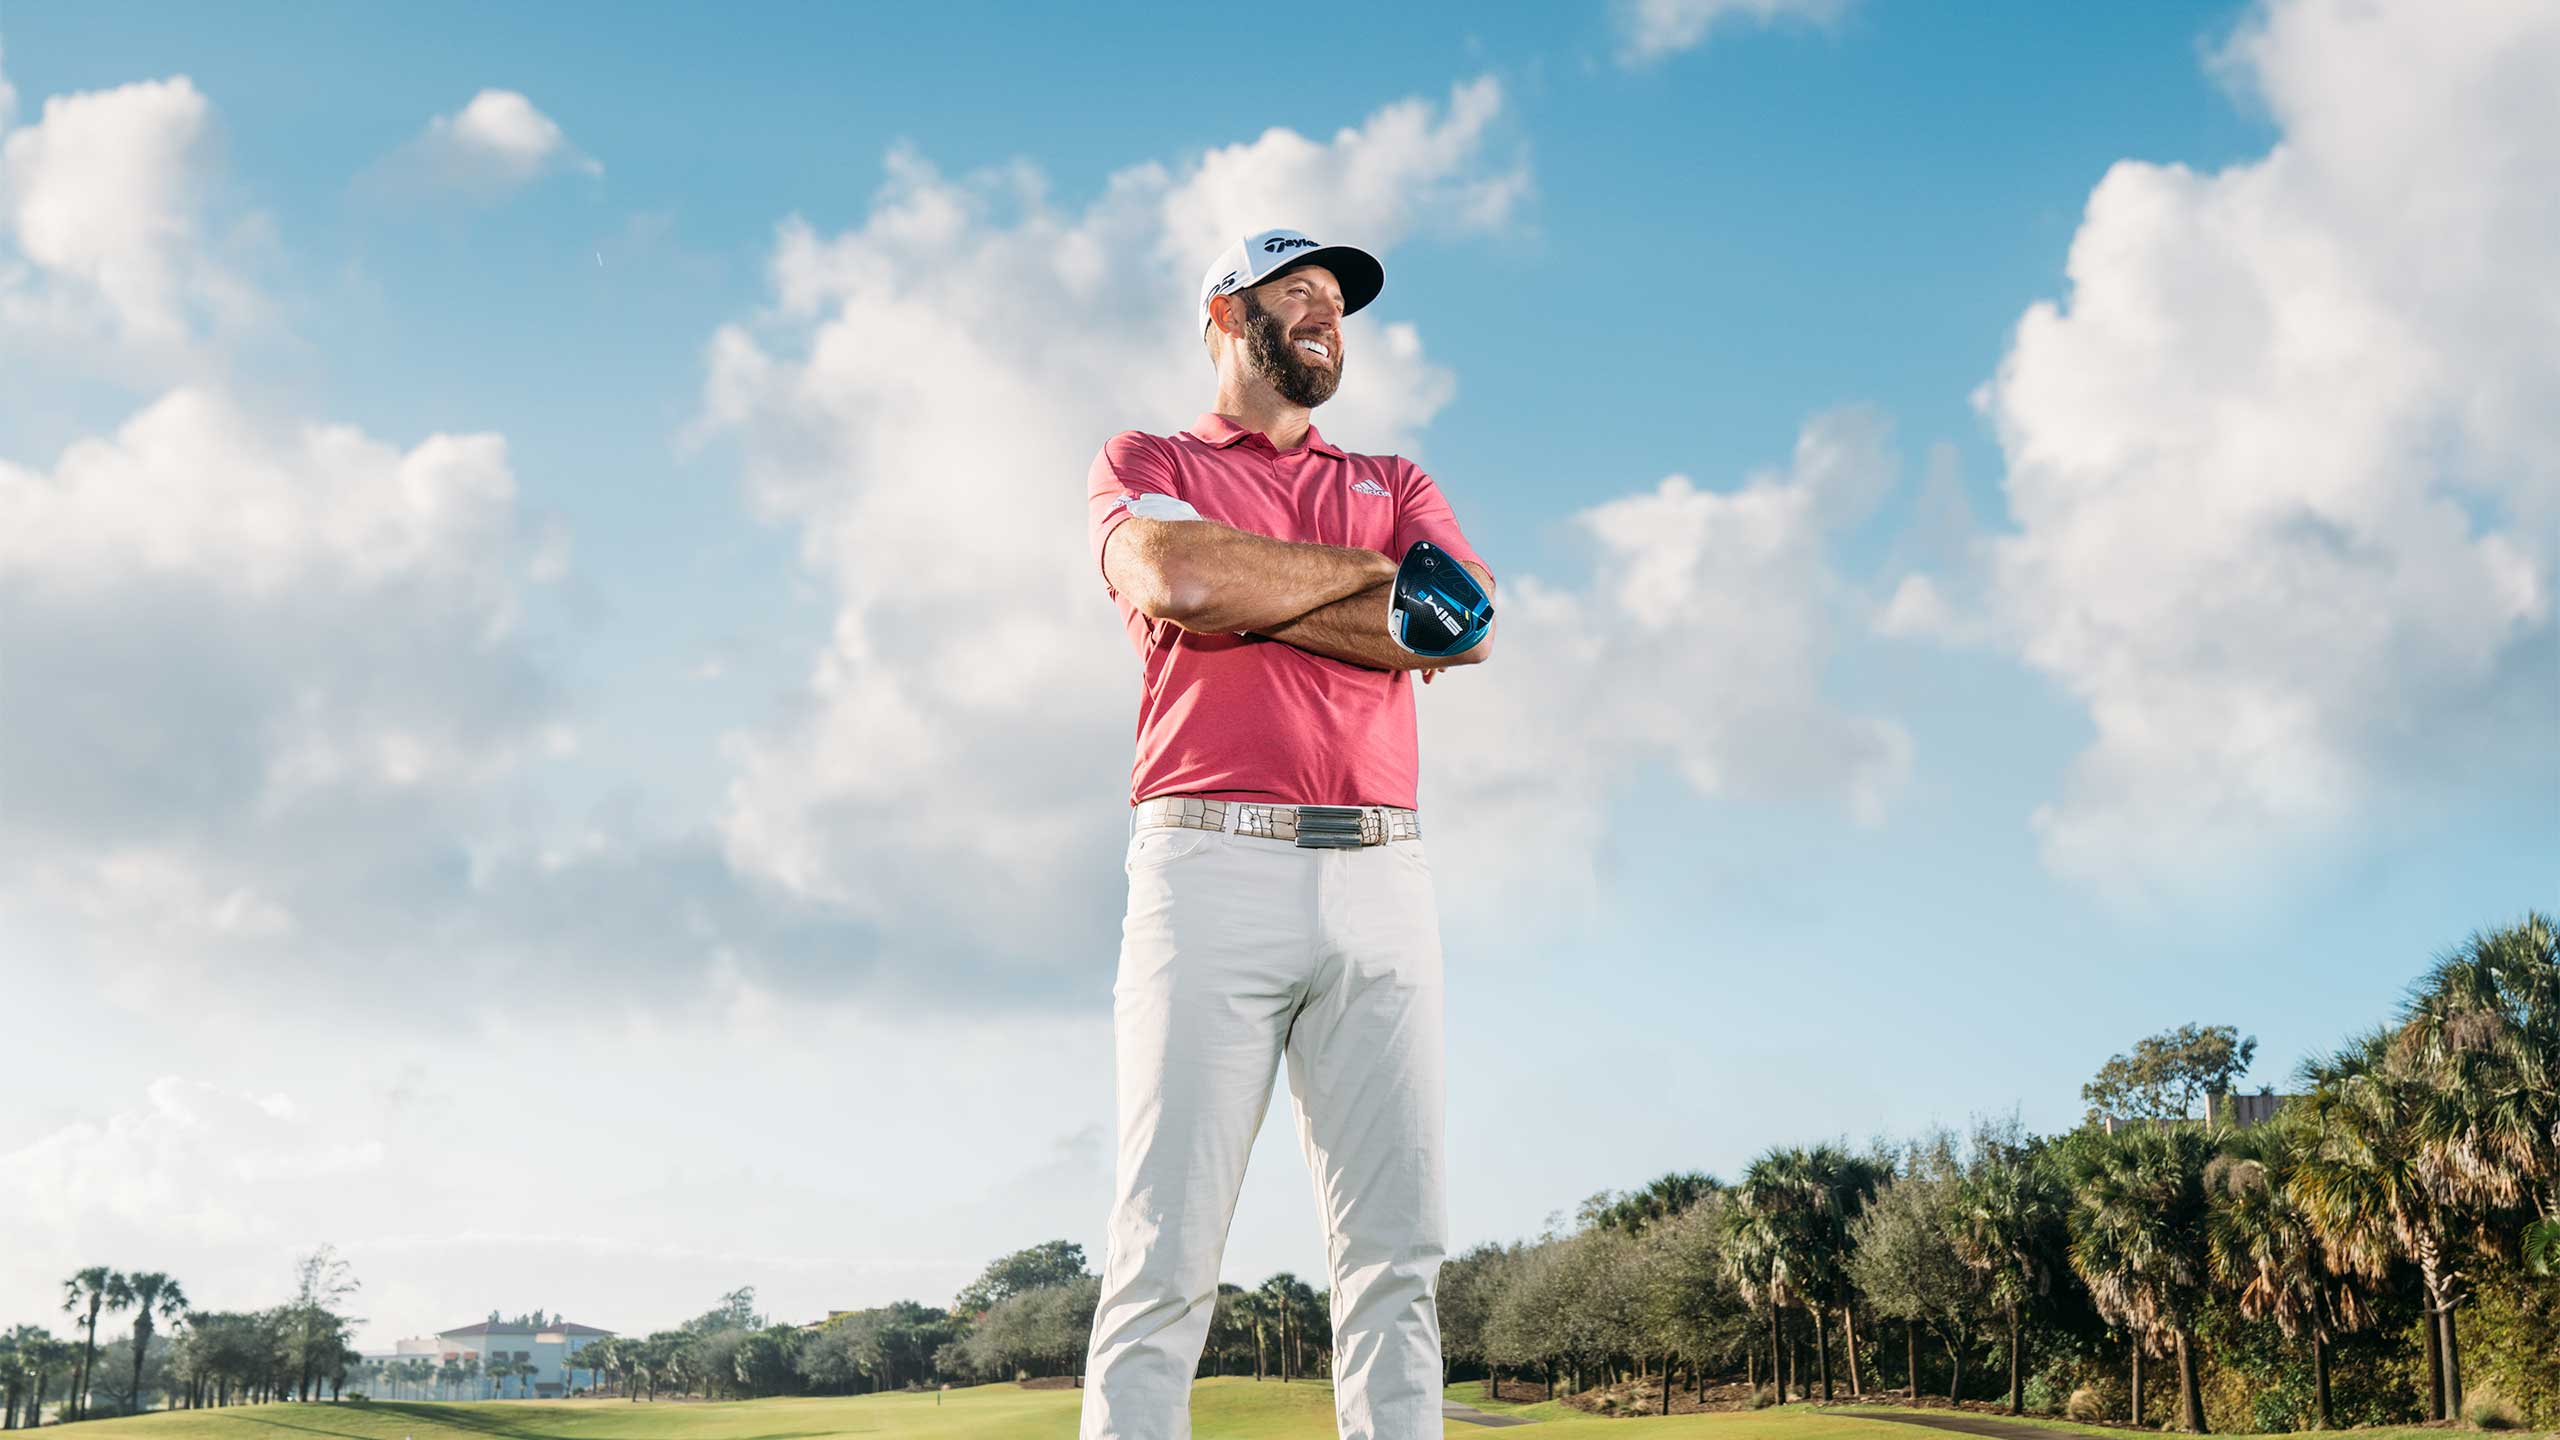 Dustin Johnson poses for a photo.